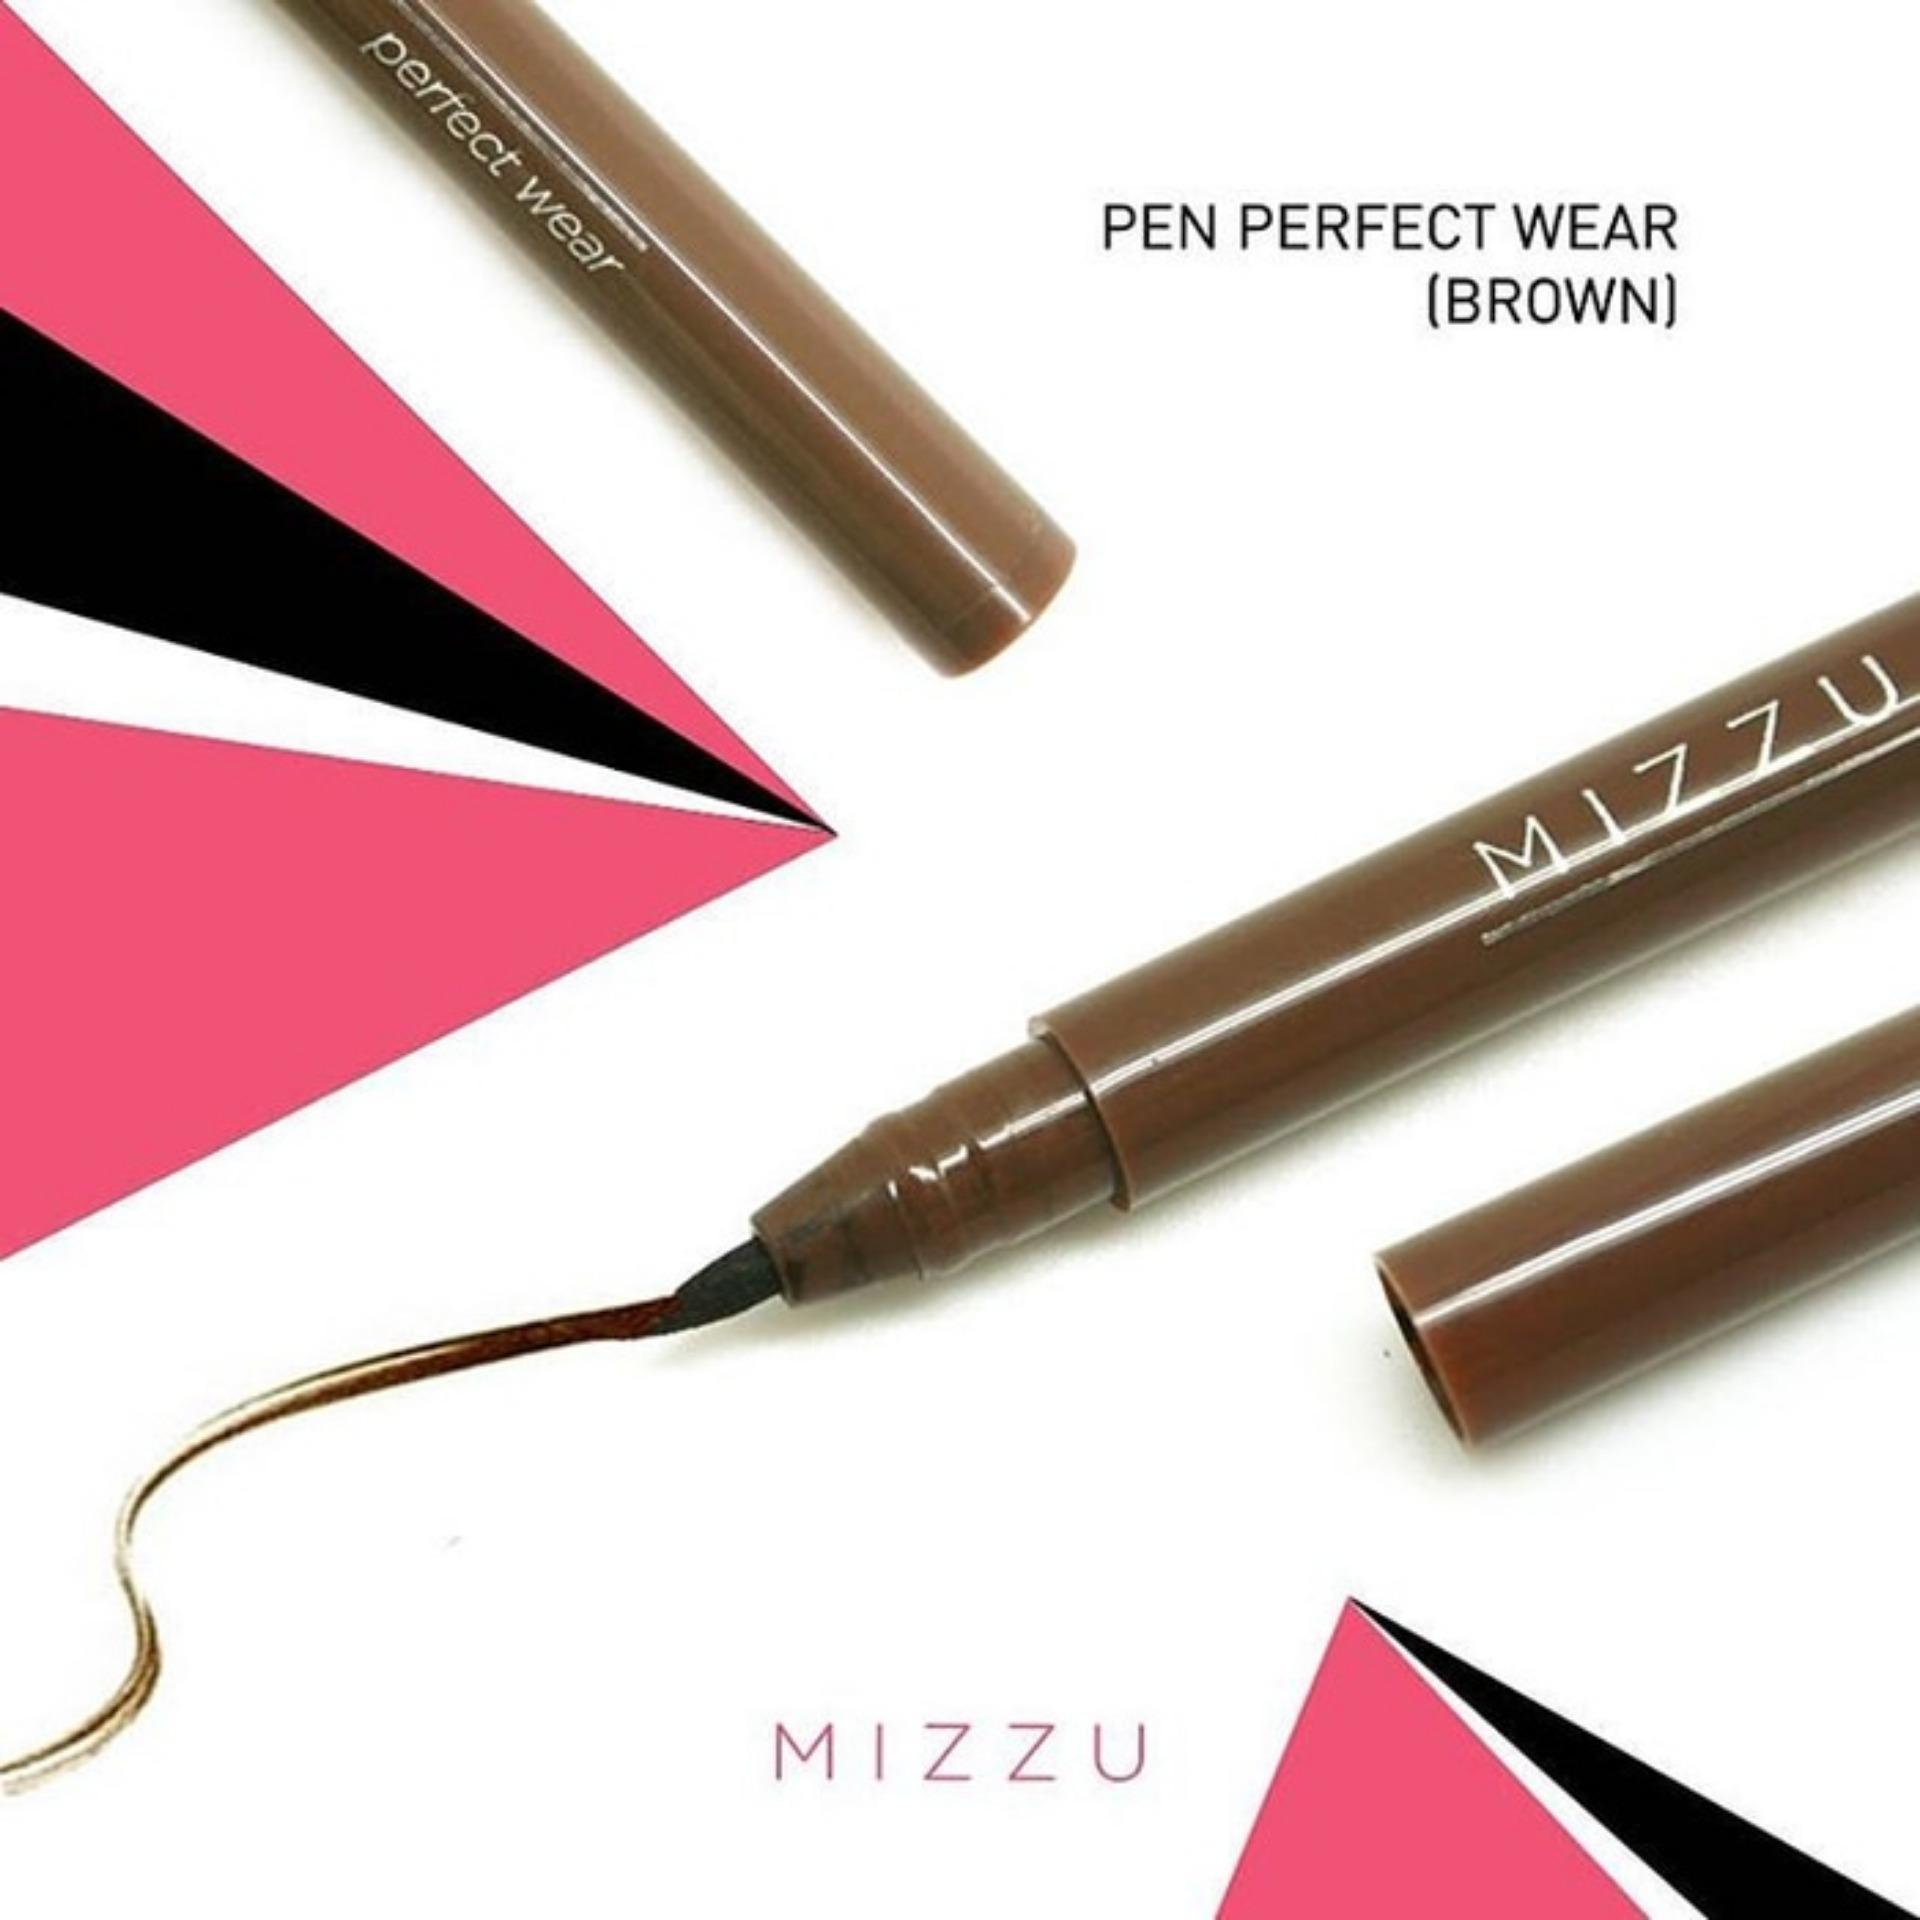 Mizzu Eyeliner Pen Perfect Wear (Brown) - Warna Pigmented Eyeliner